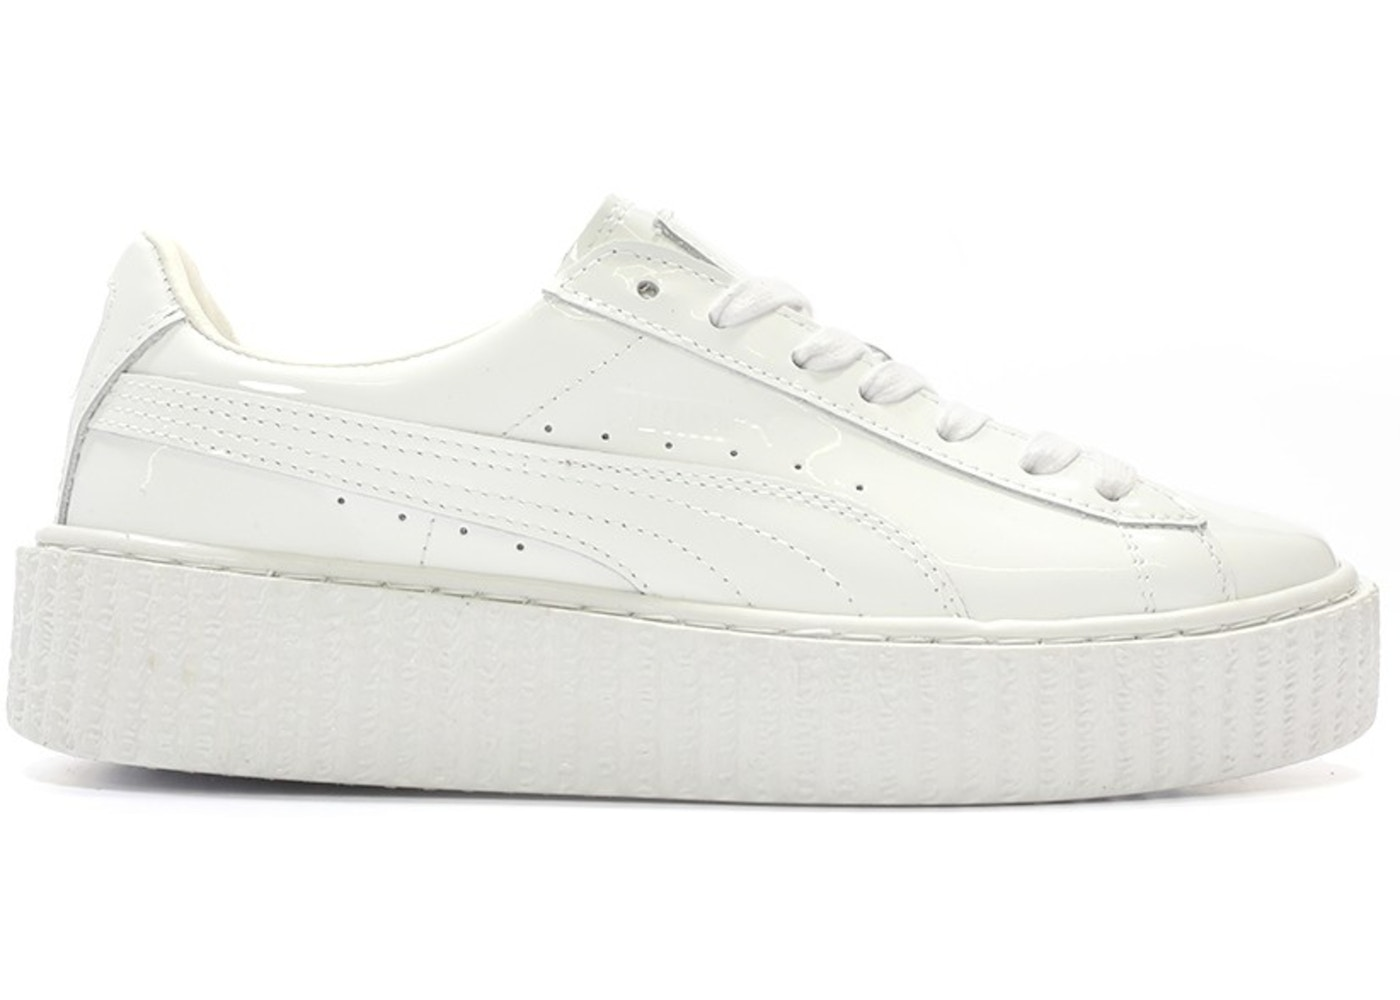 low priced 11730 38aa6 Puma Creepers Rihanna Fenty Glossy White (W)